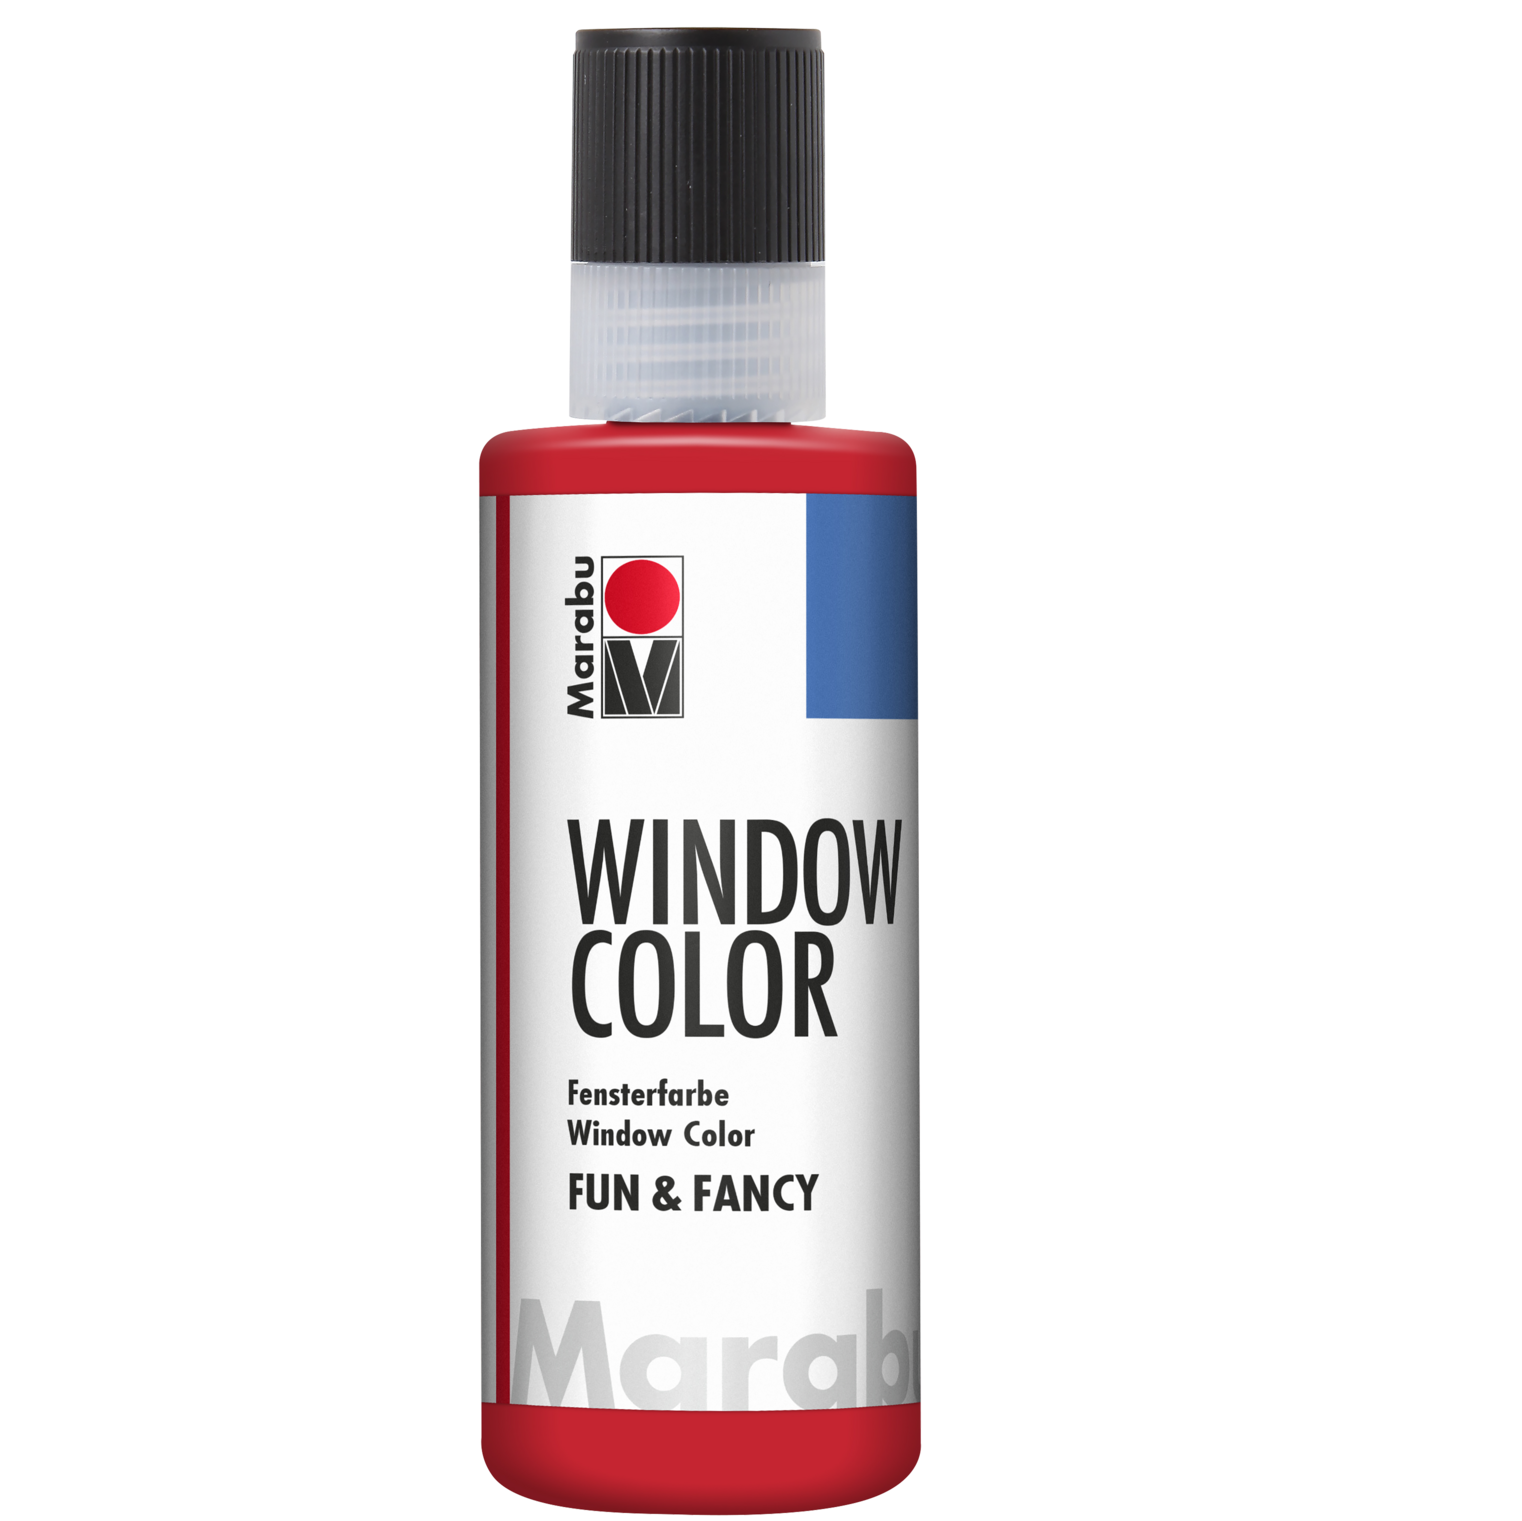 Marabu Window Color fun & fancy, Kirschrot 031, 80 ml